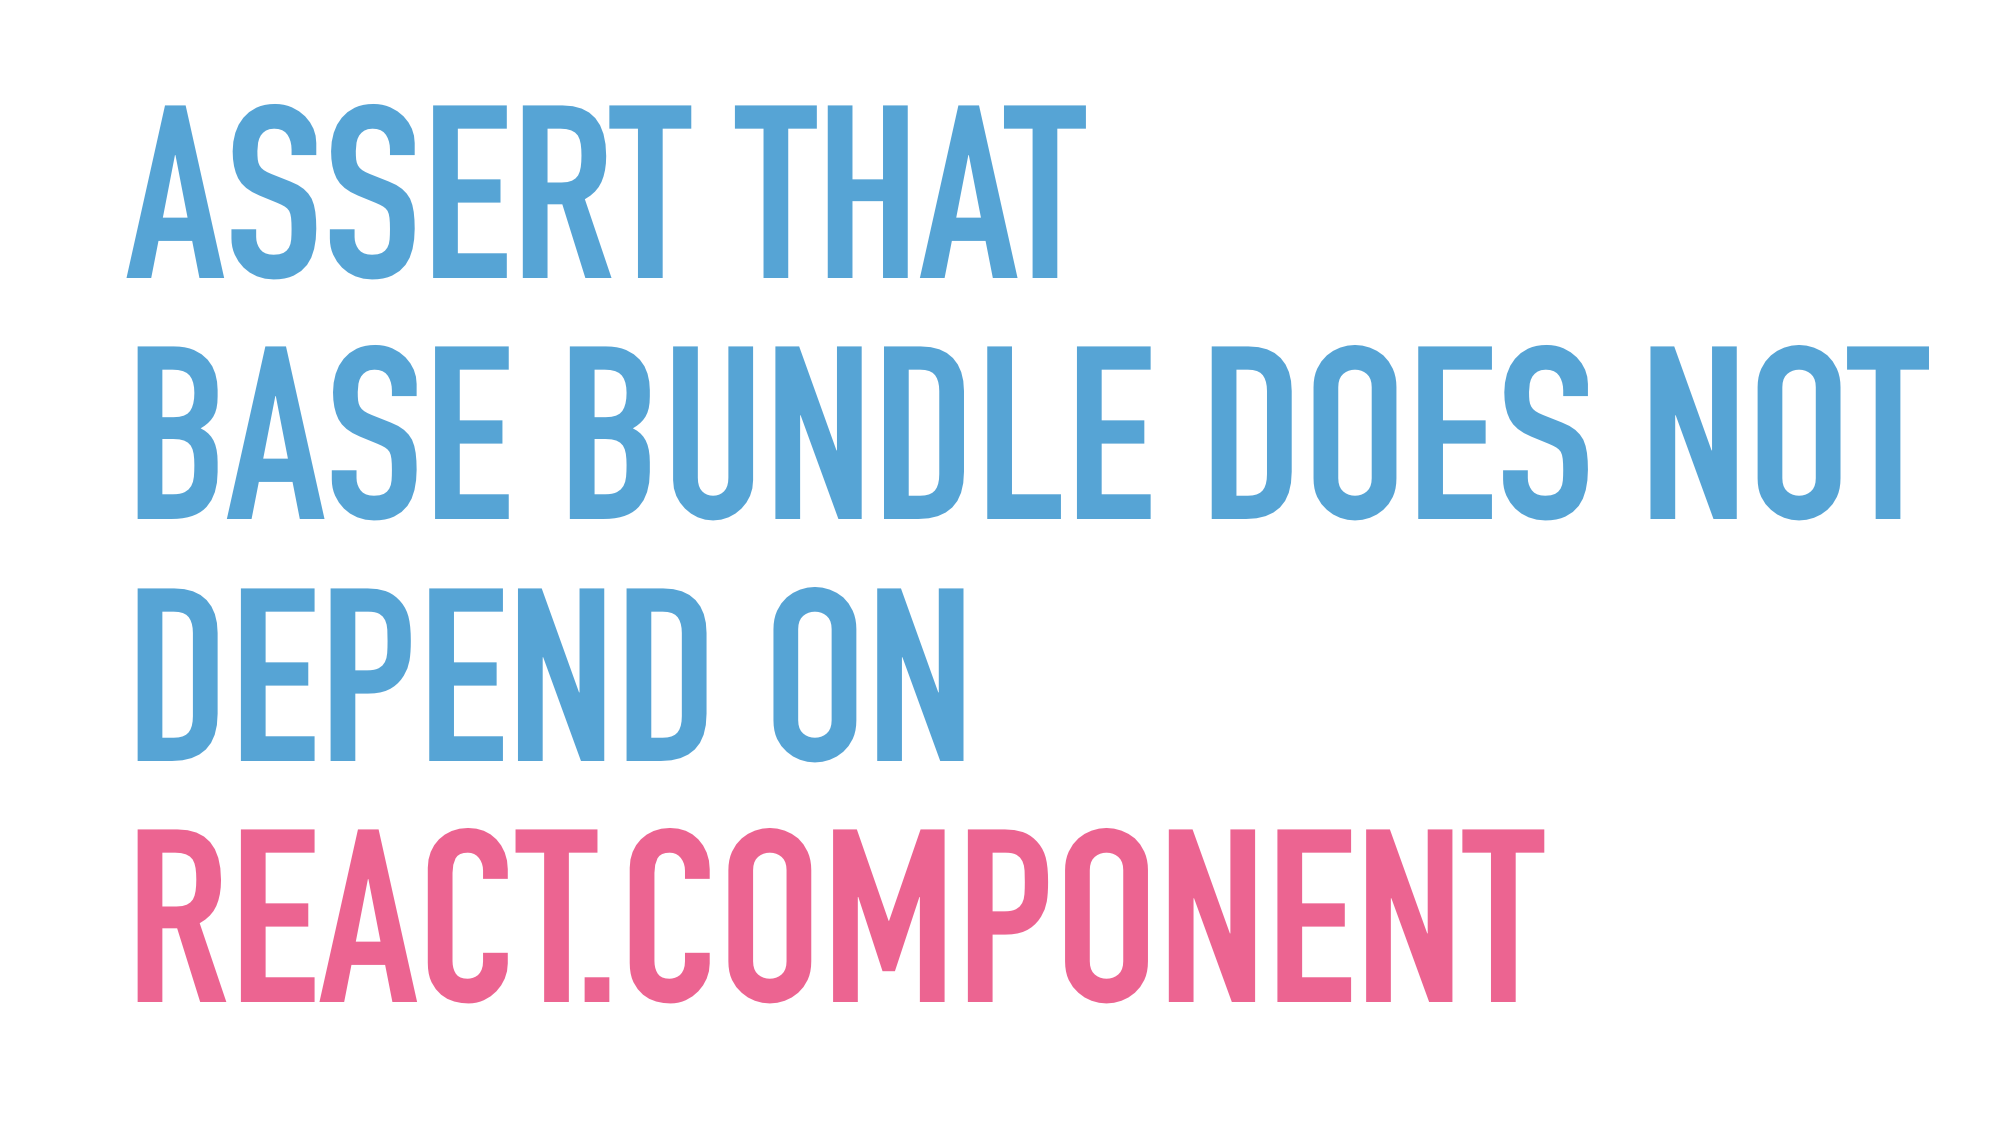 Slide text: Assert that base bundle does not depend on React.Component